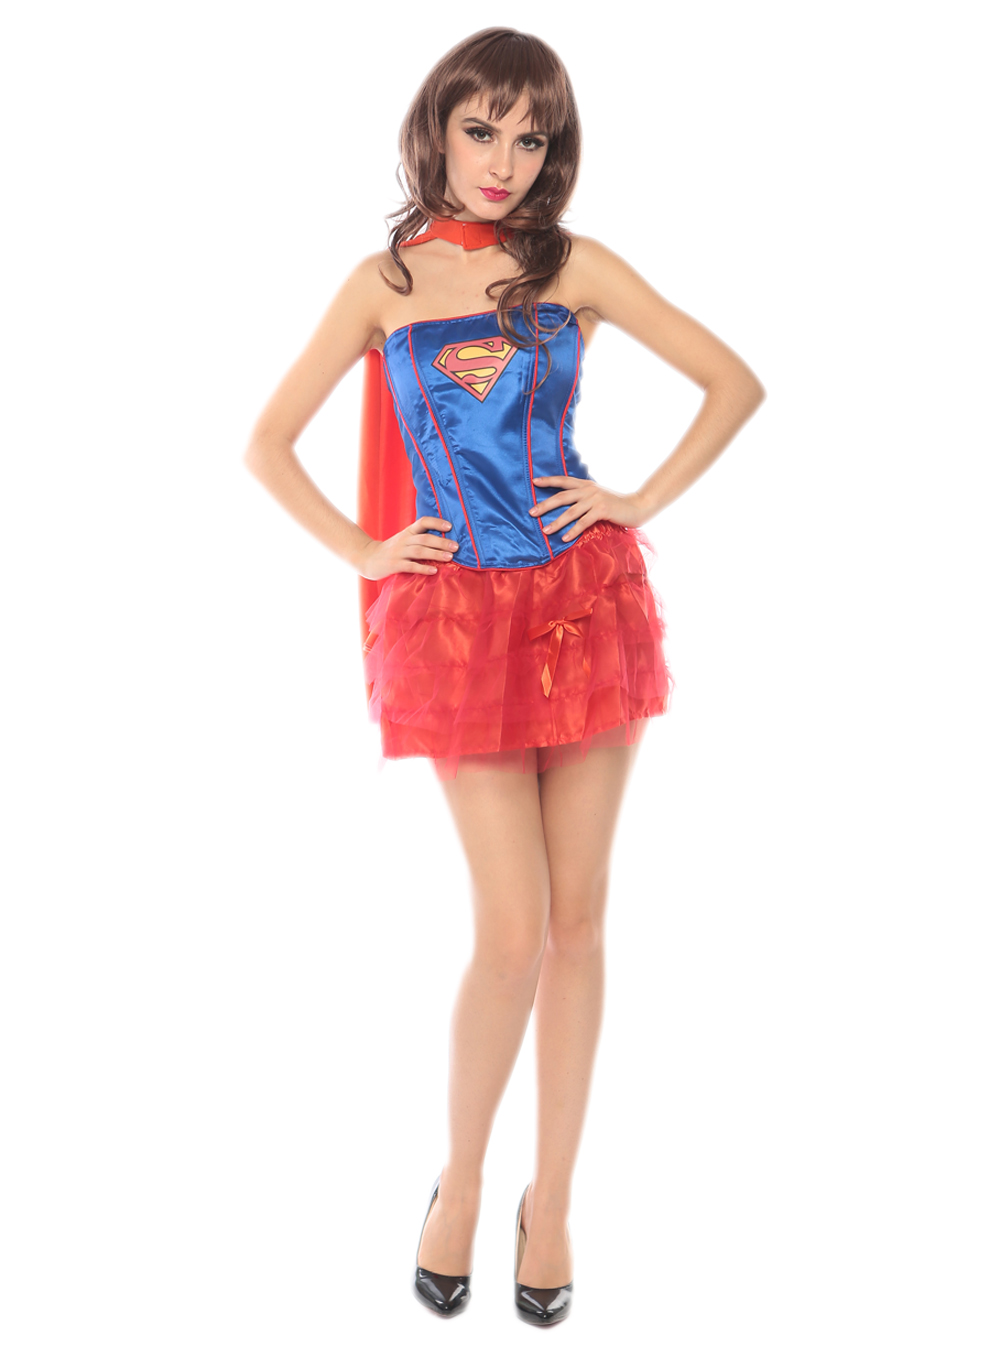 sexy mature women blue and red tutu supergirl costume 3s1725 free shipping adult naughty supergirl costumes - Halloween Naughty Costumes